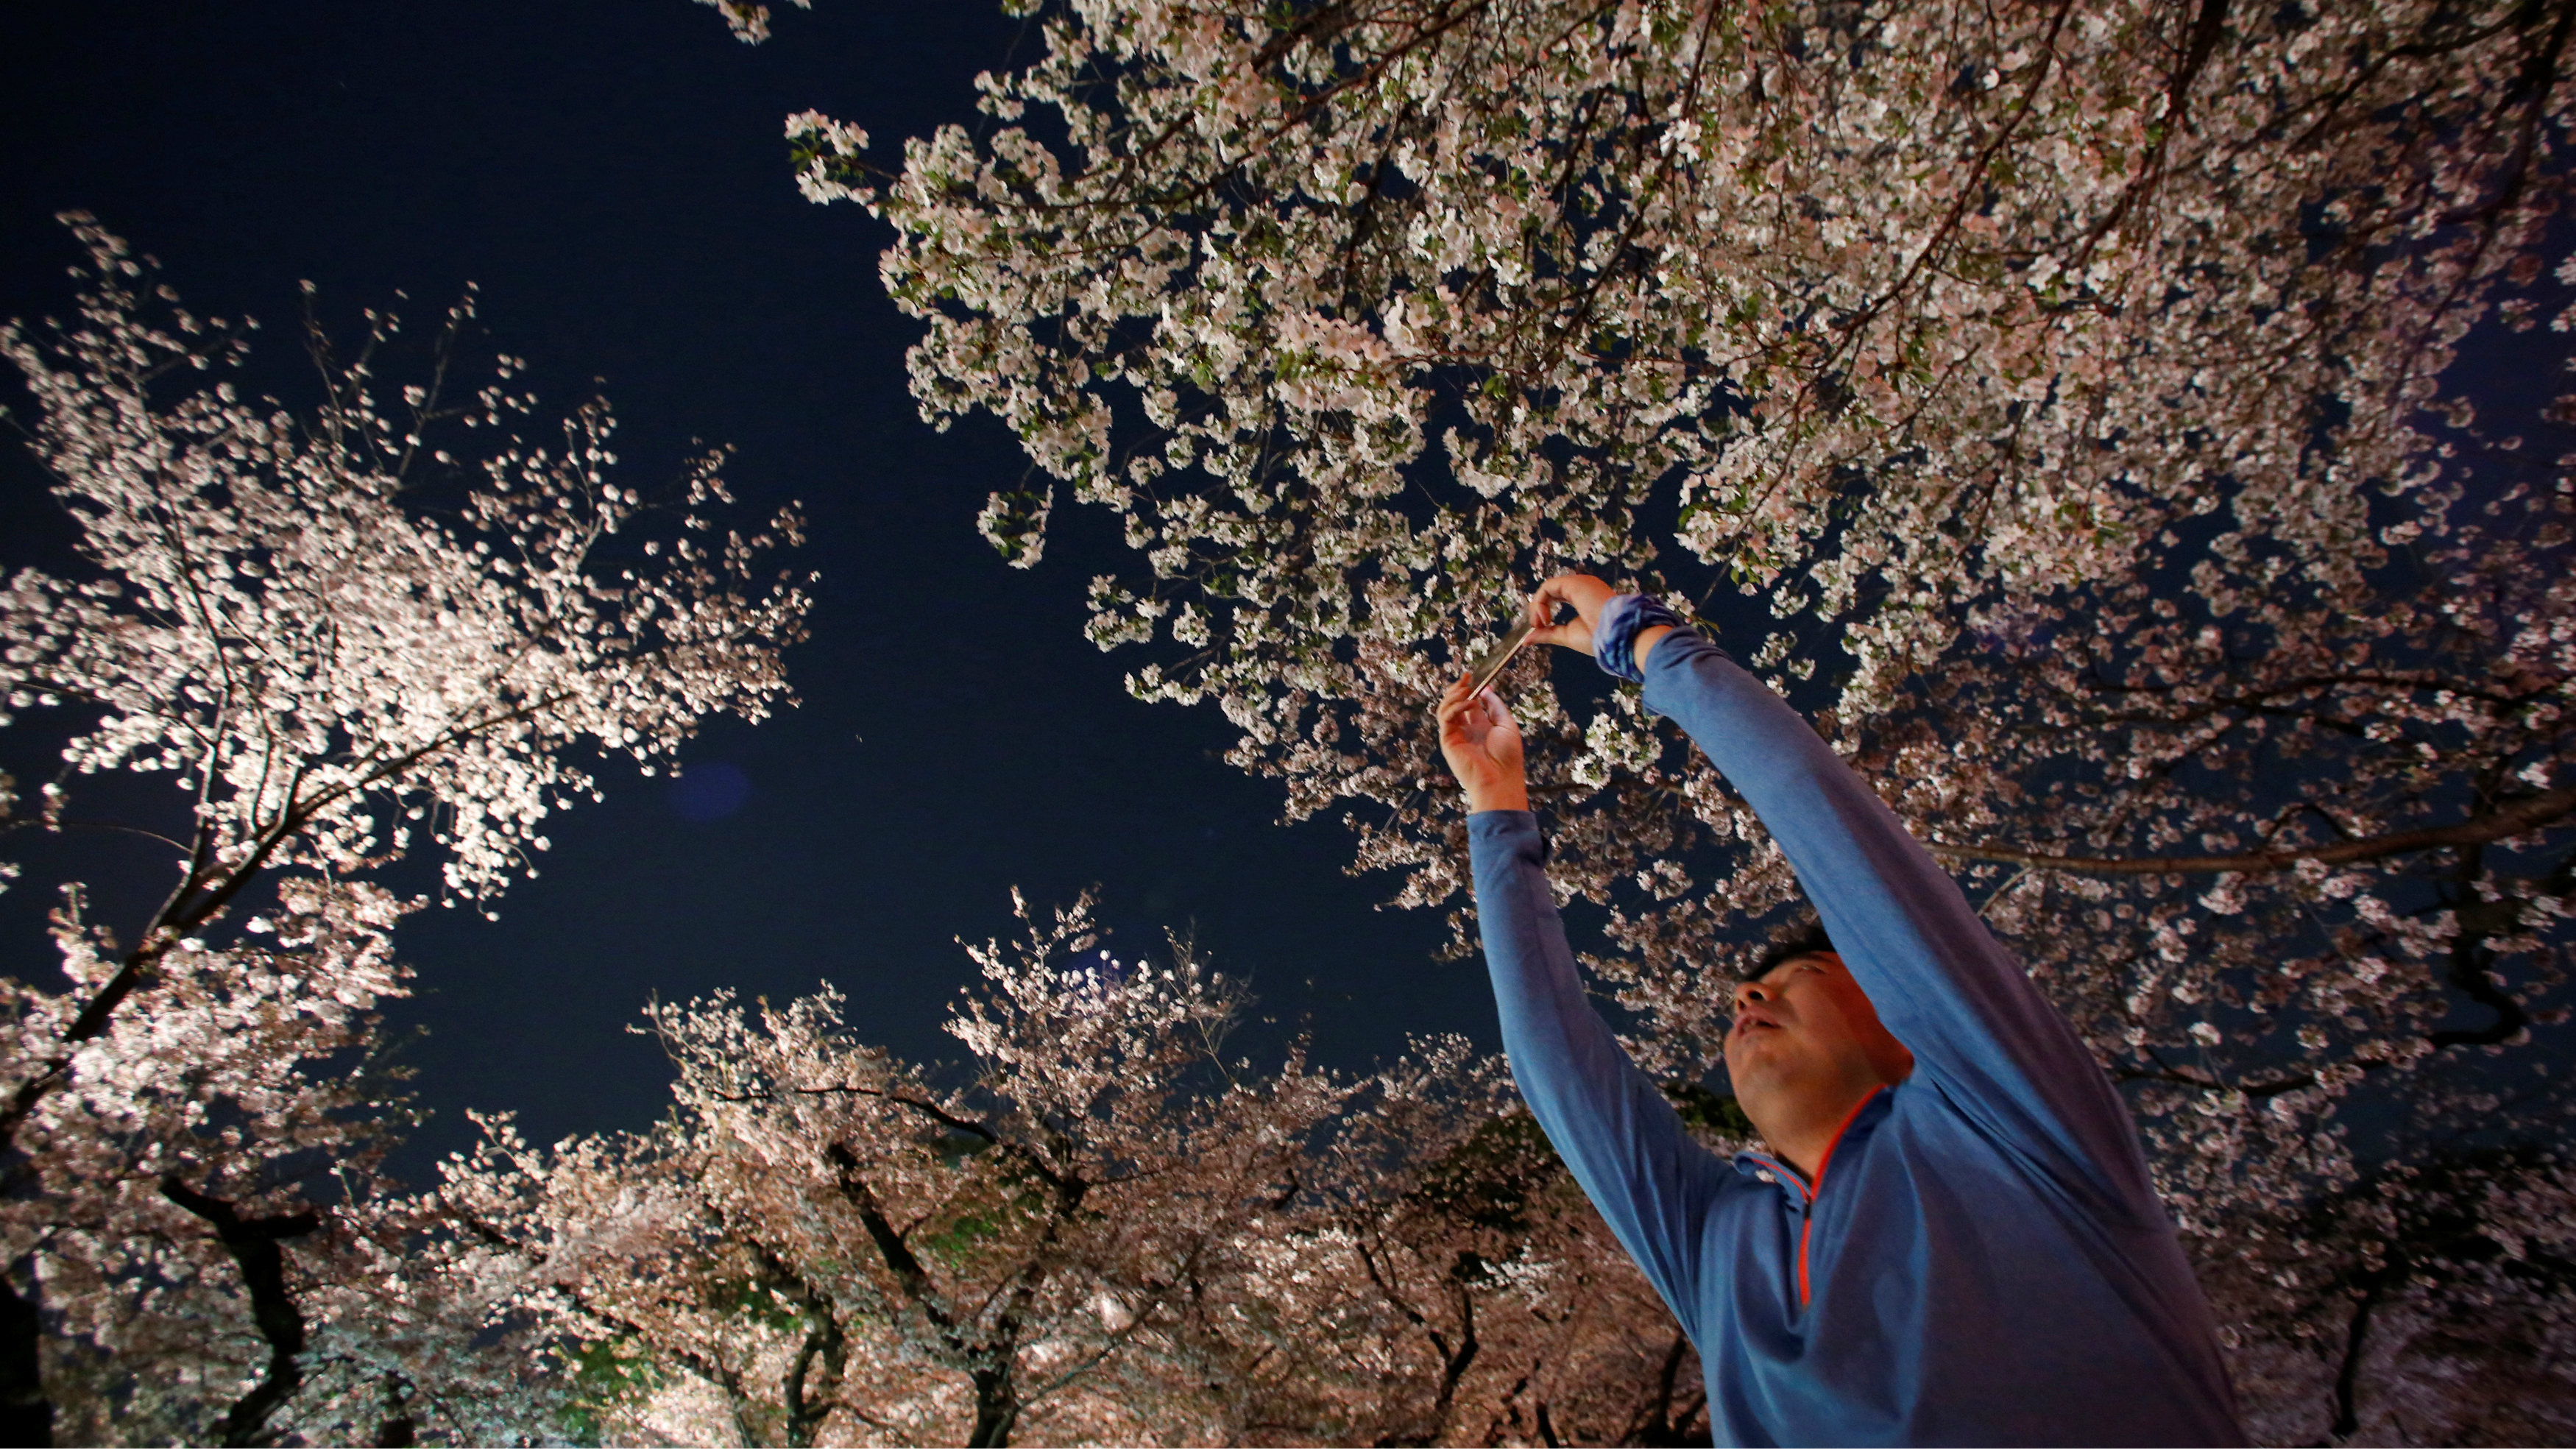 A person taking a picture of the cherry blossoms in Japan.